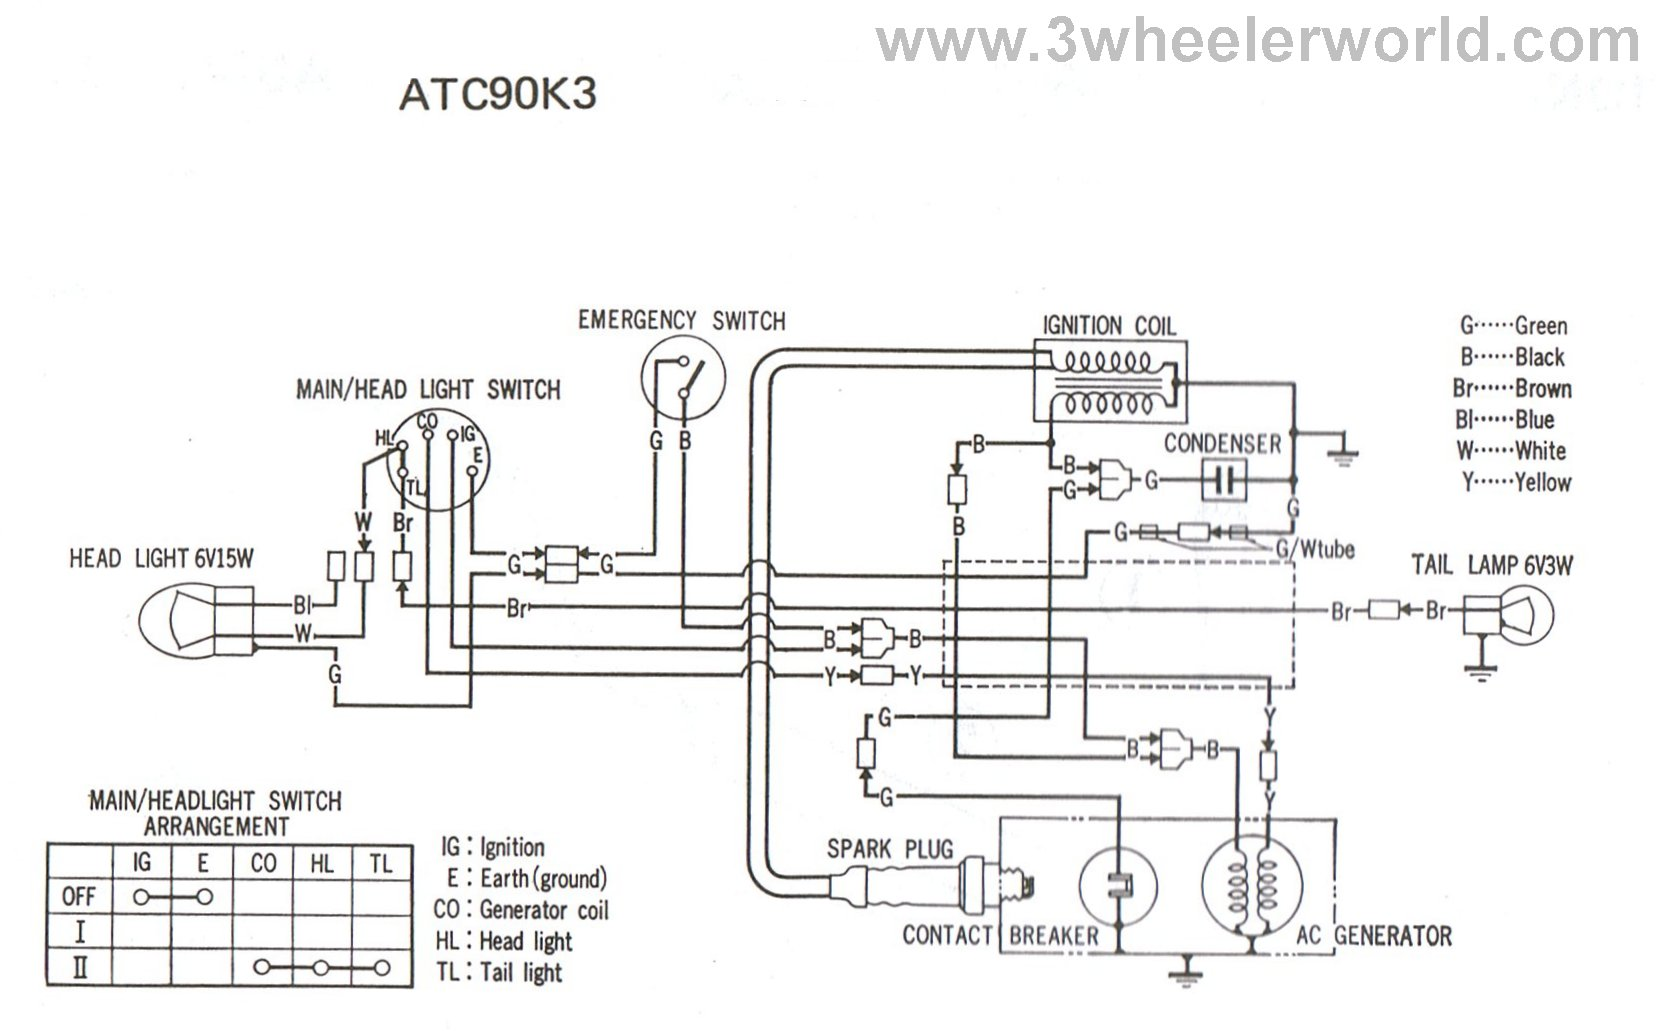 ATC90K3HM polaris predator 90 wiring diagram polaris 90 service manual 1995 polaris scrambler wiring diagram at n-0.co